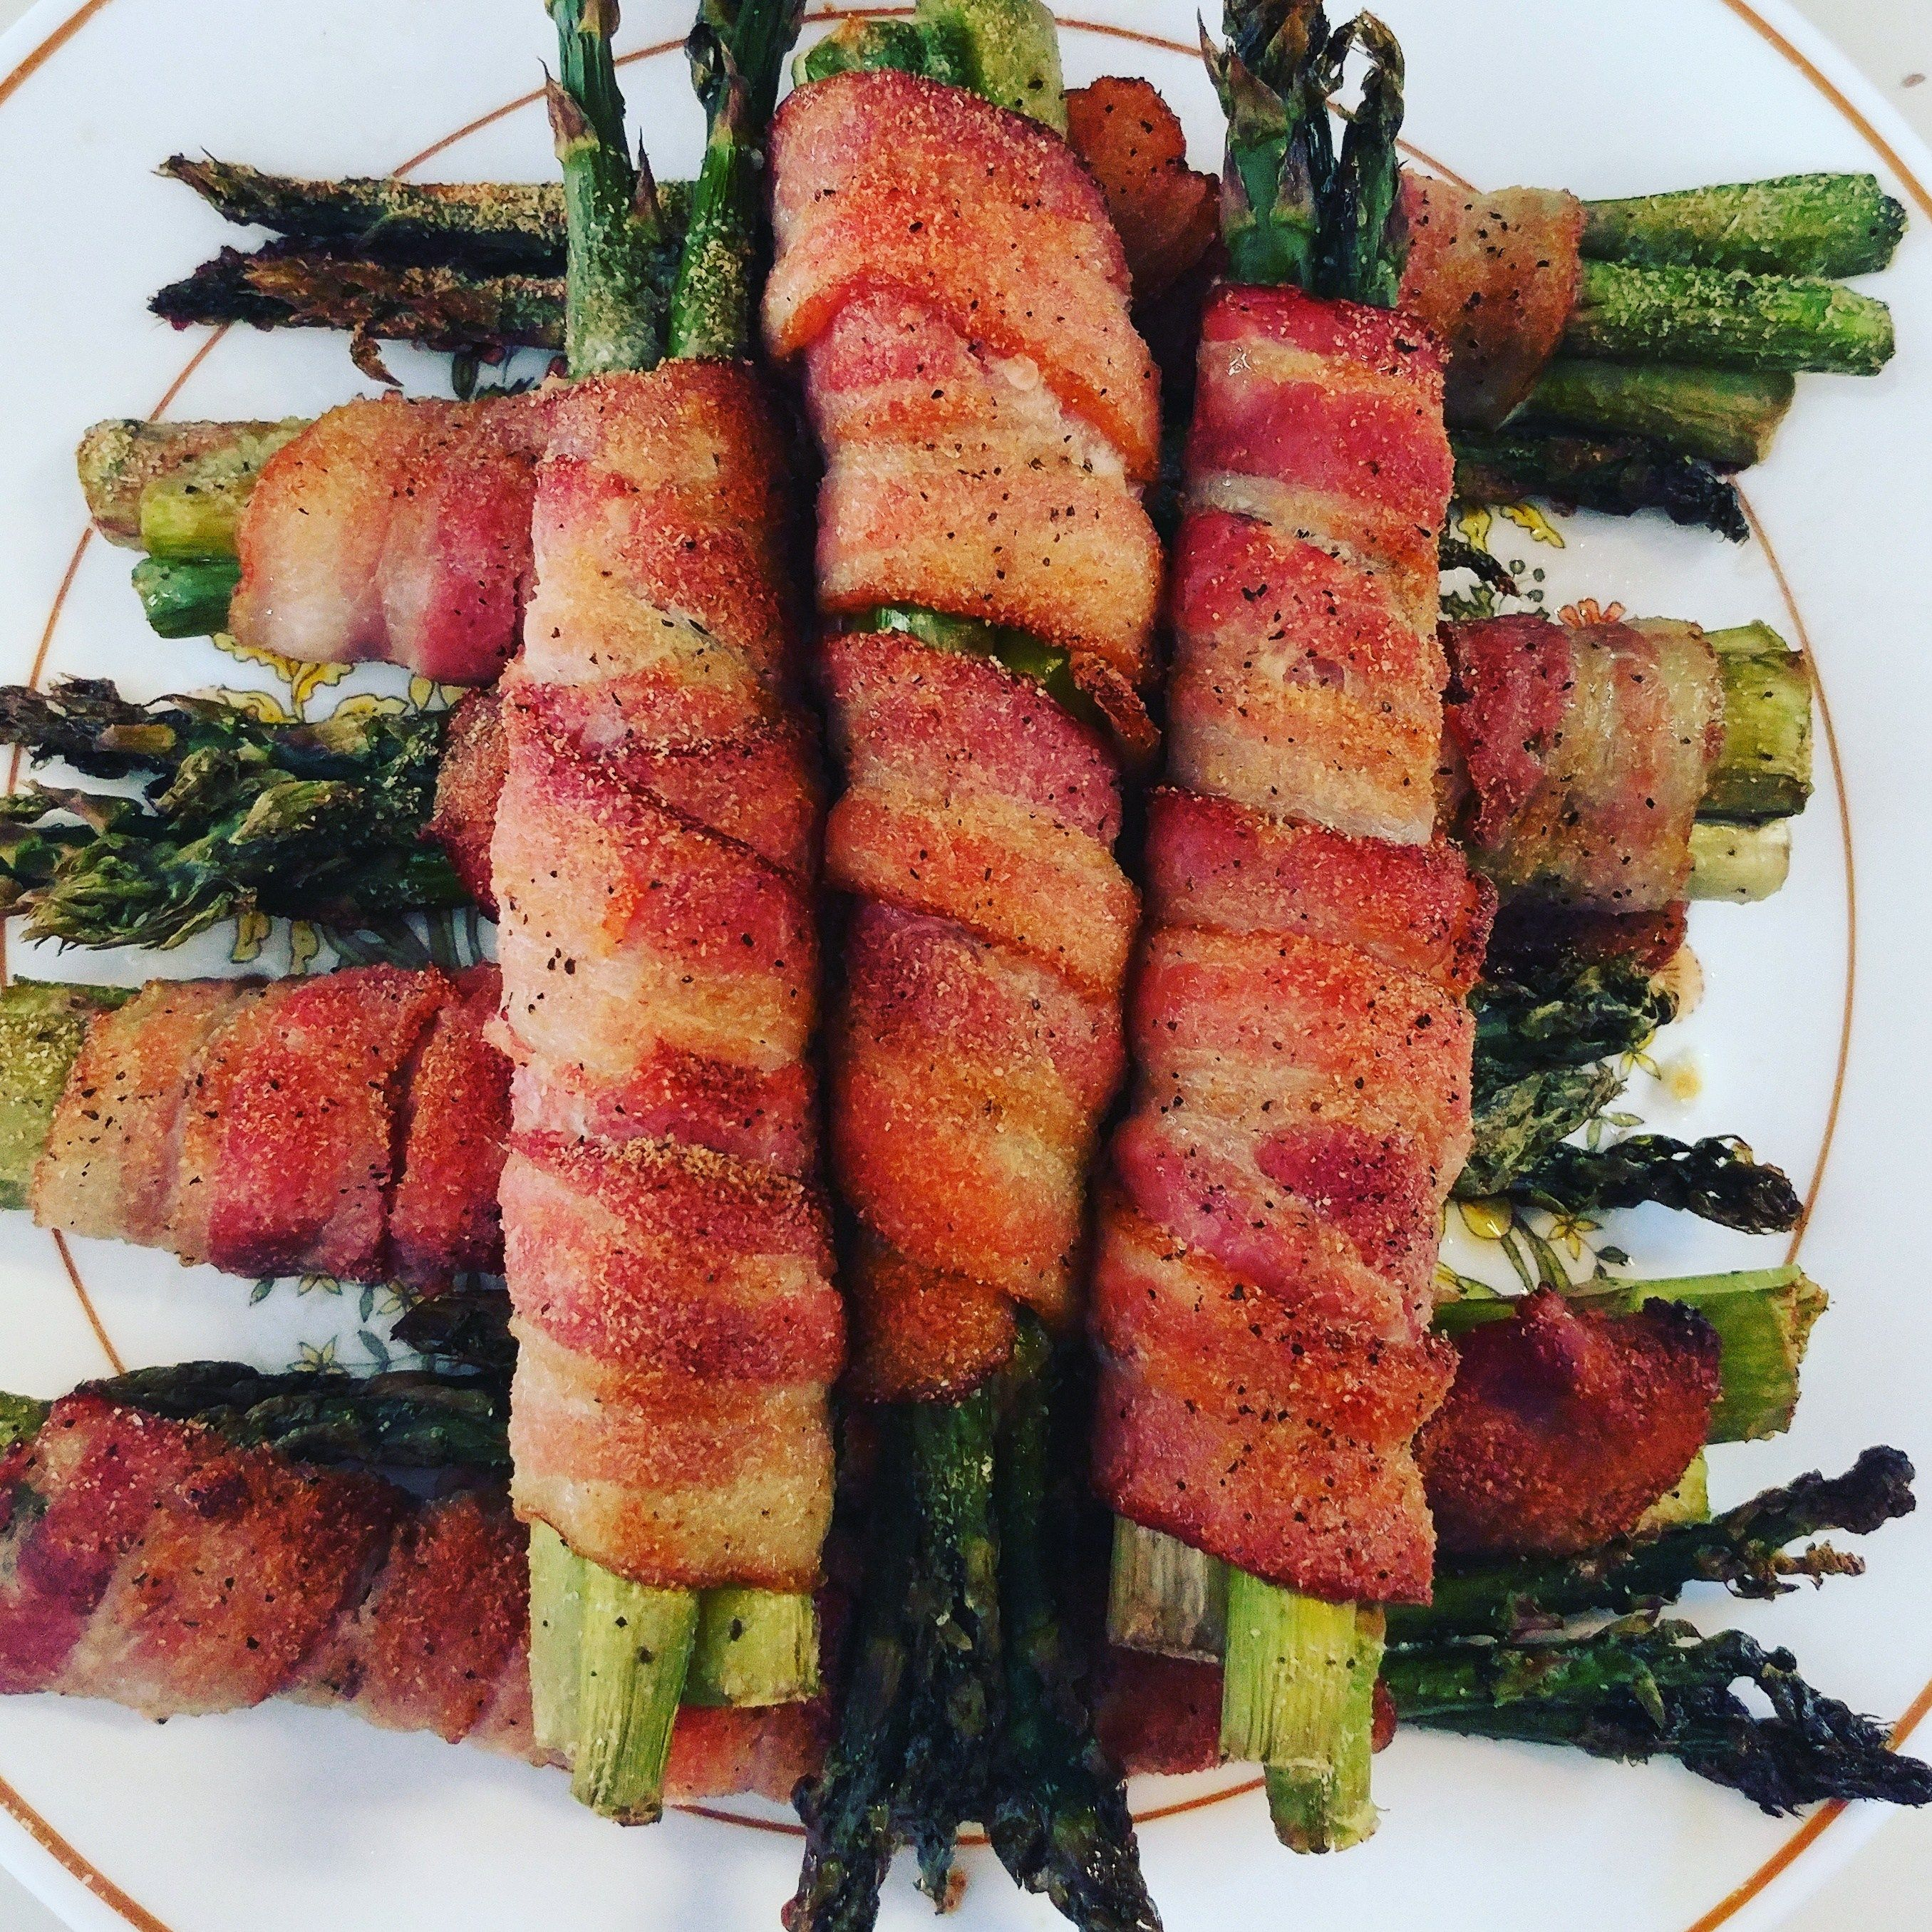 Grilled Asparagus Recipes In Oven